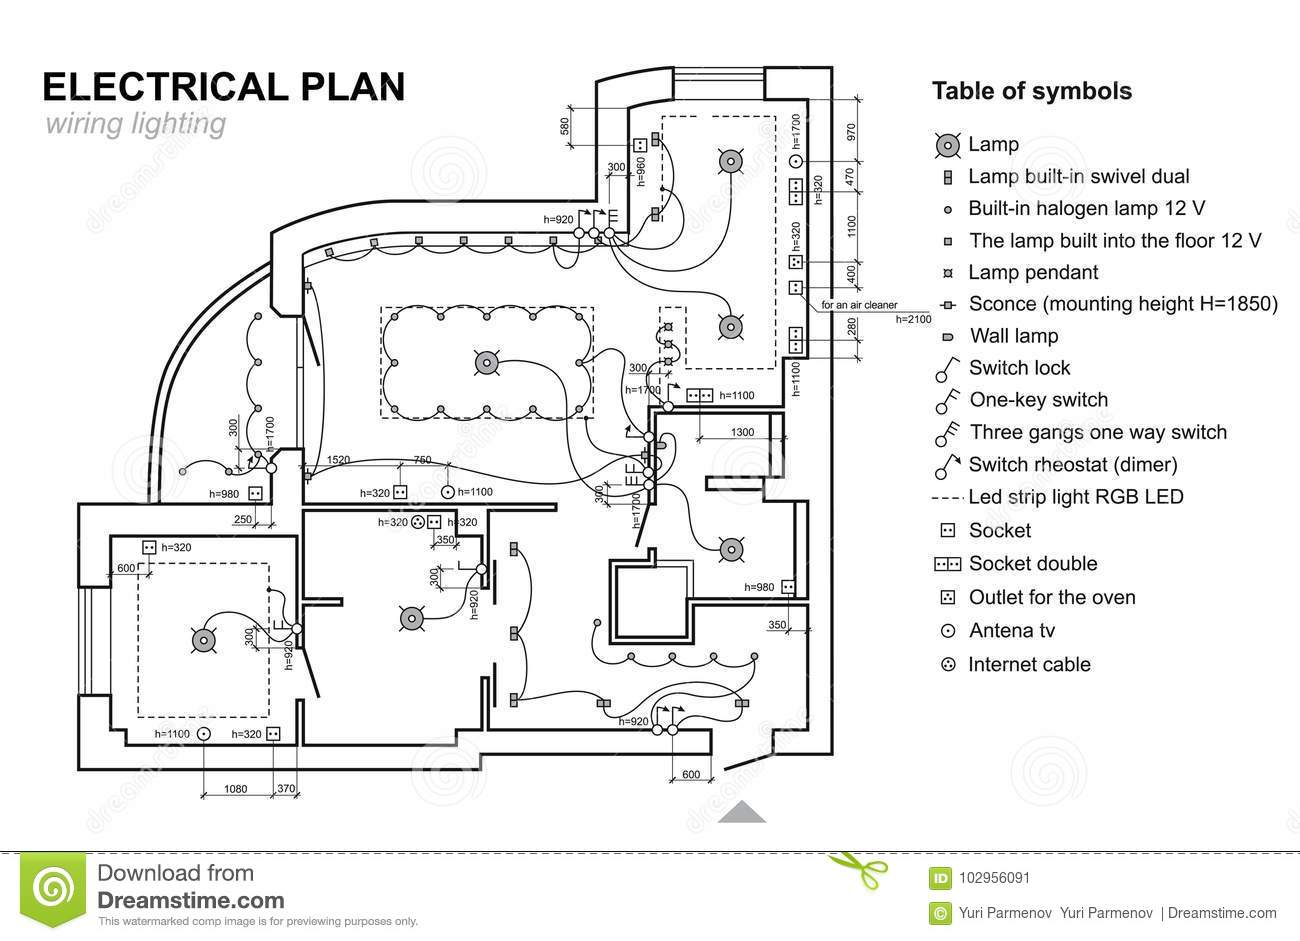 Wiring Schematic Drawing Of House